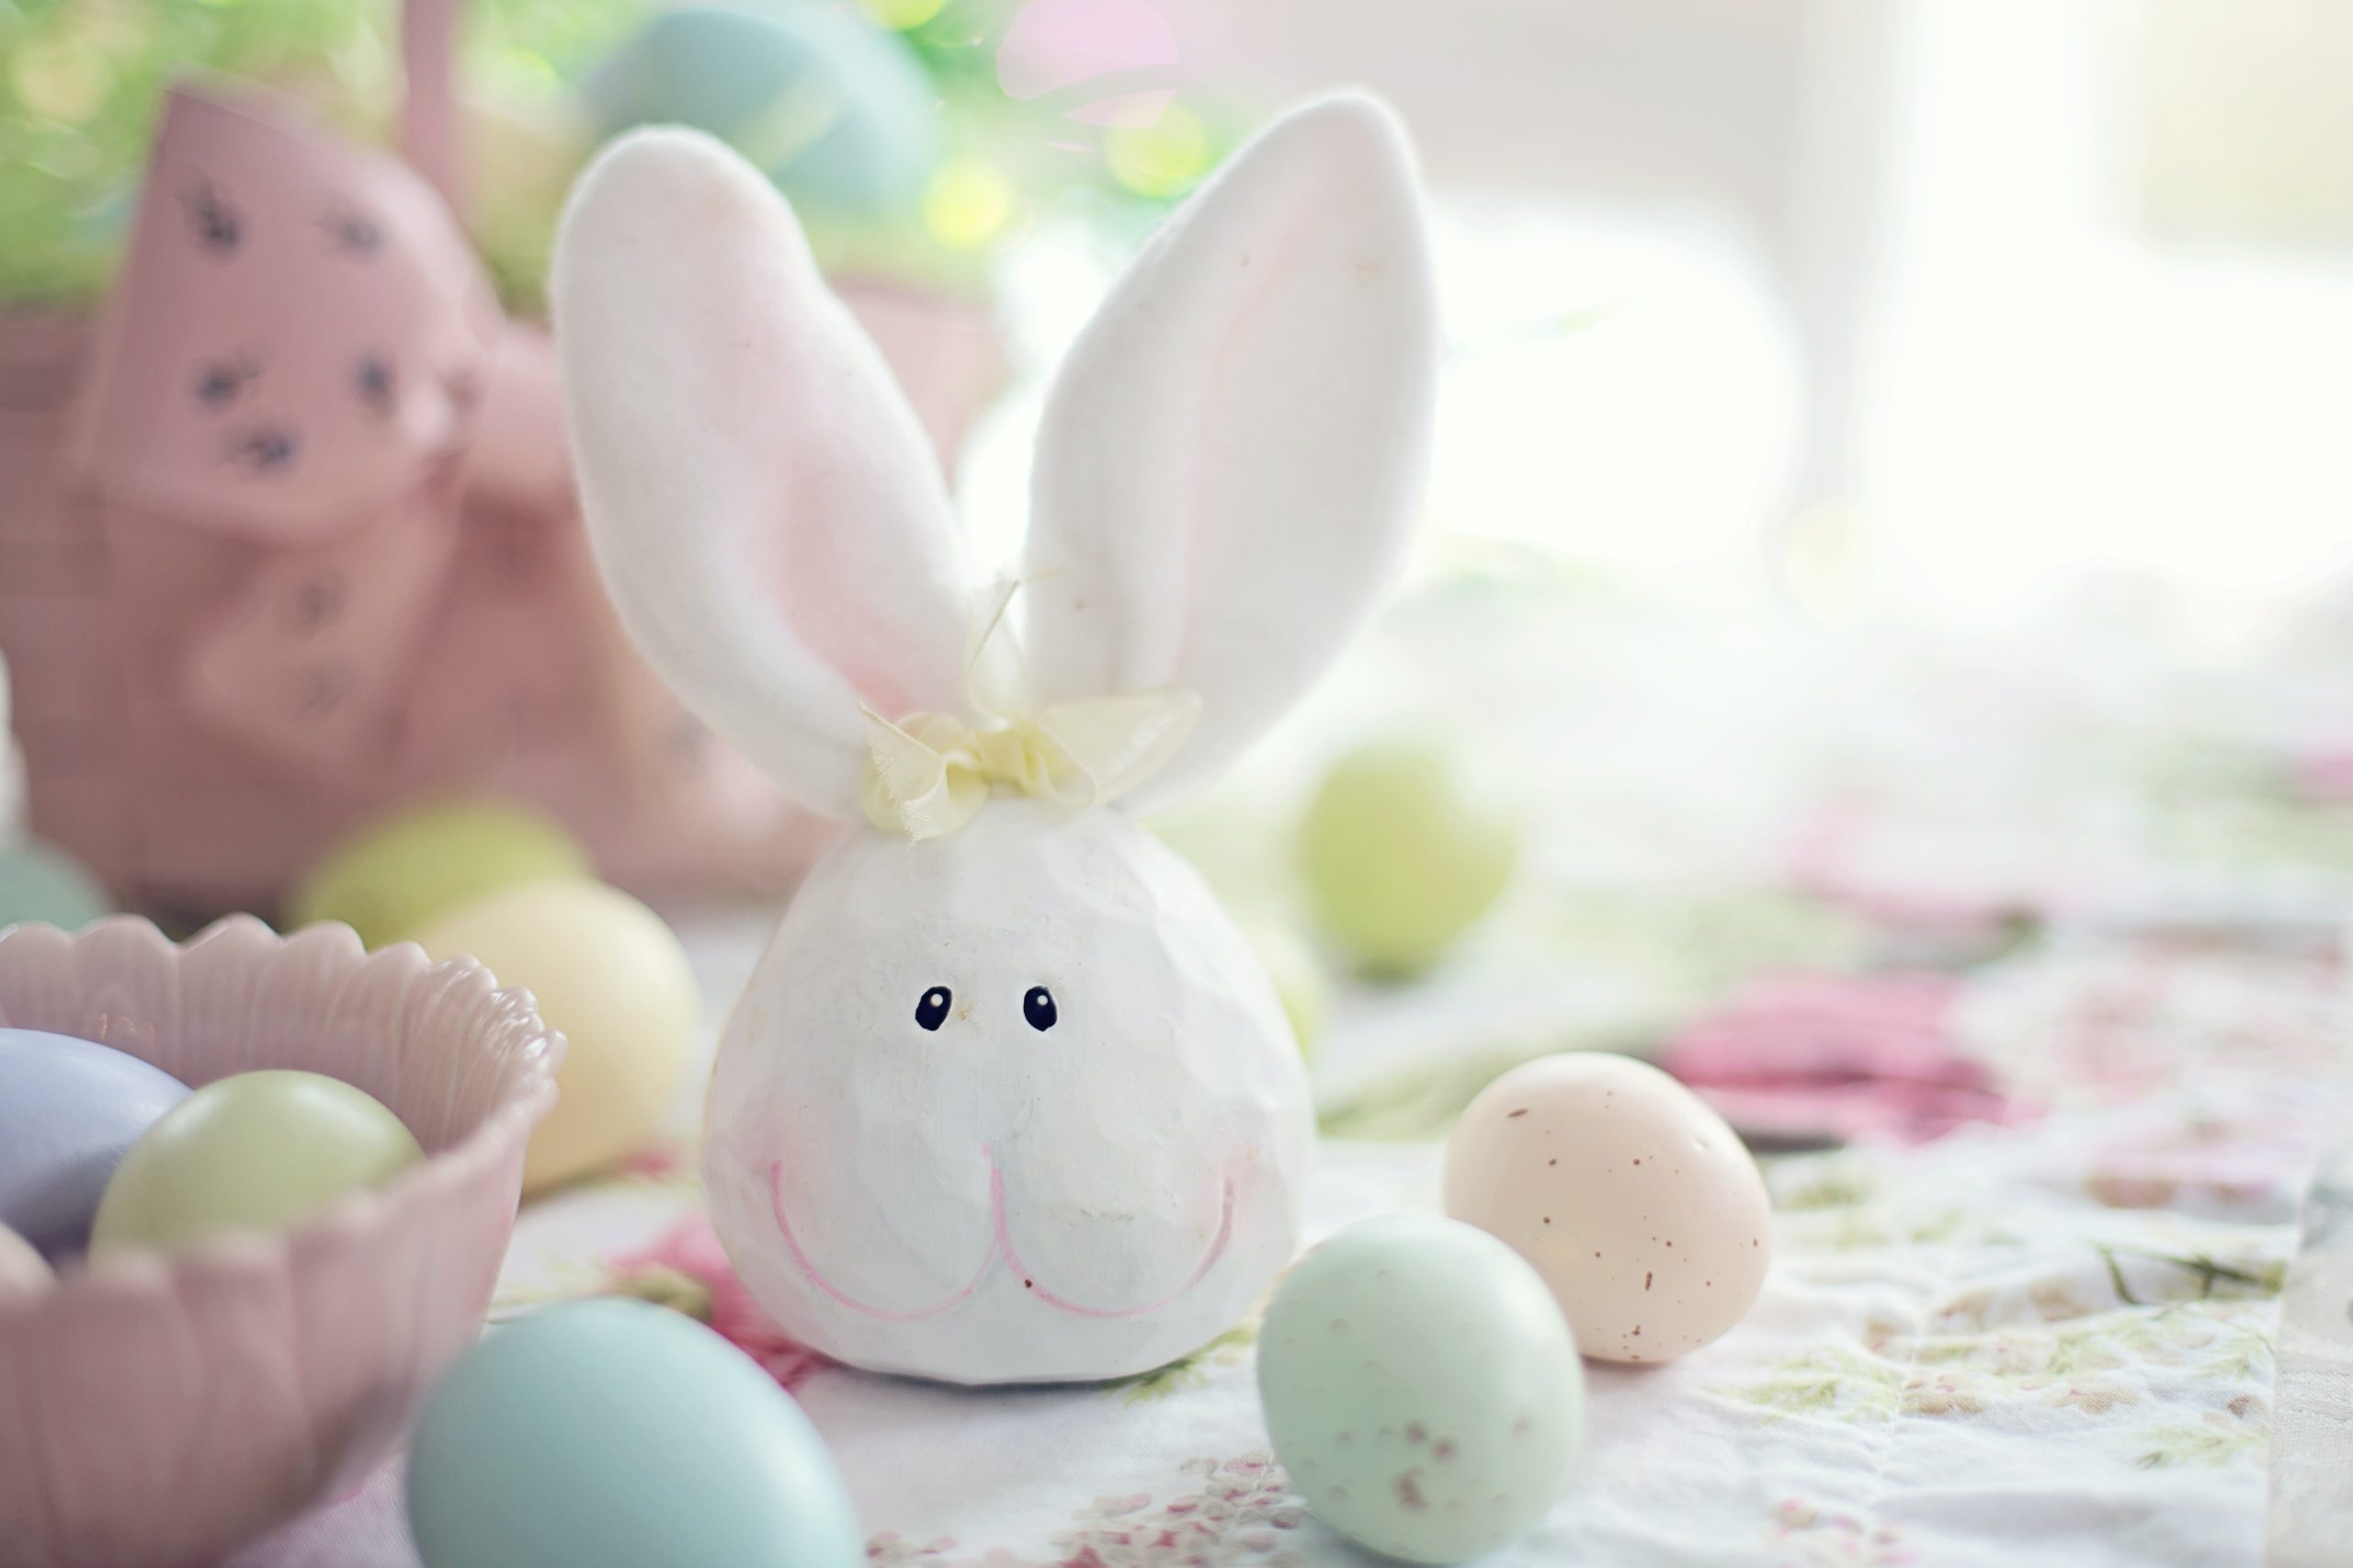 How to Celebrate Easter While Social Distancing